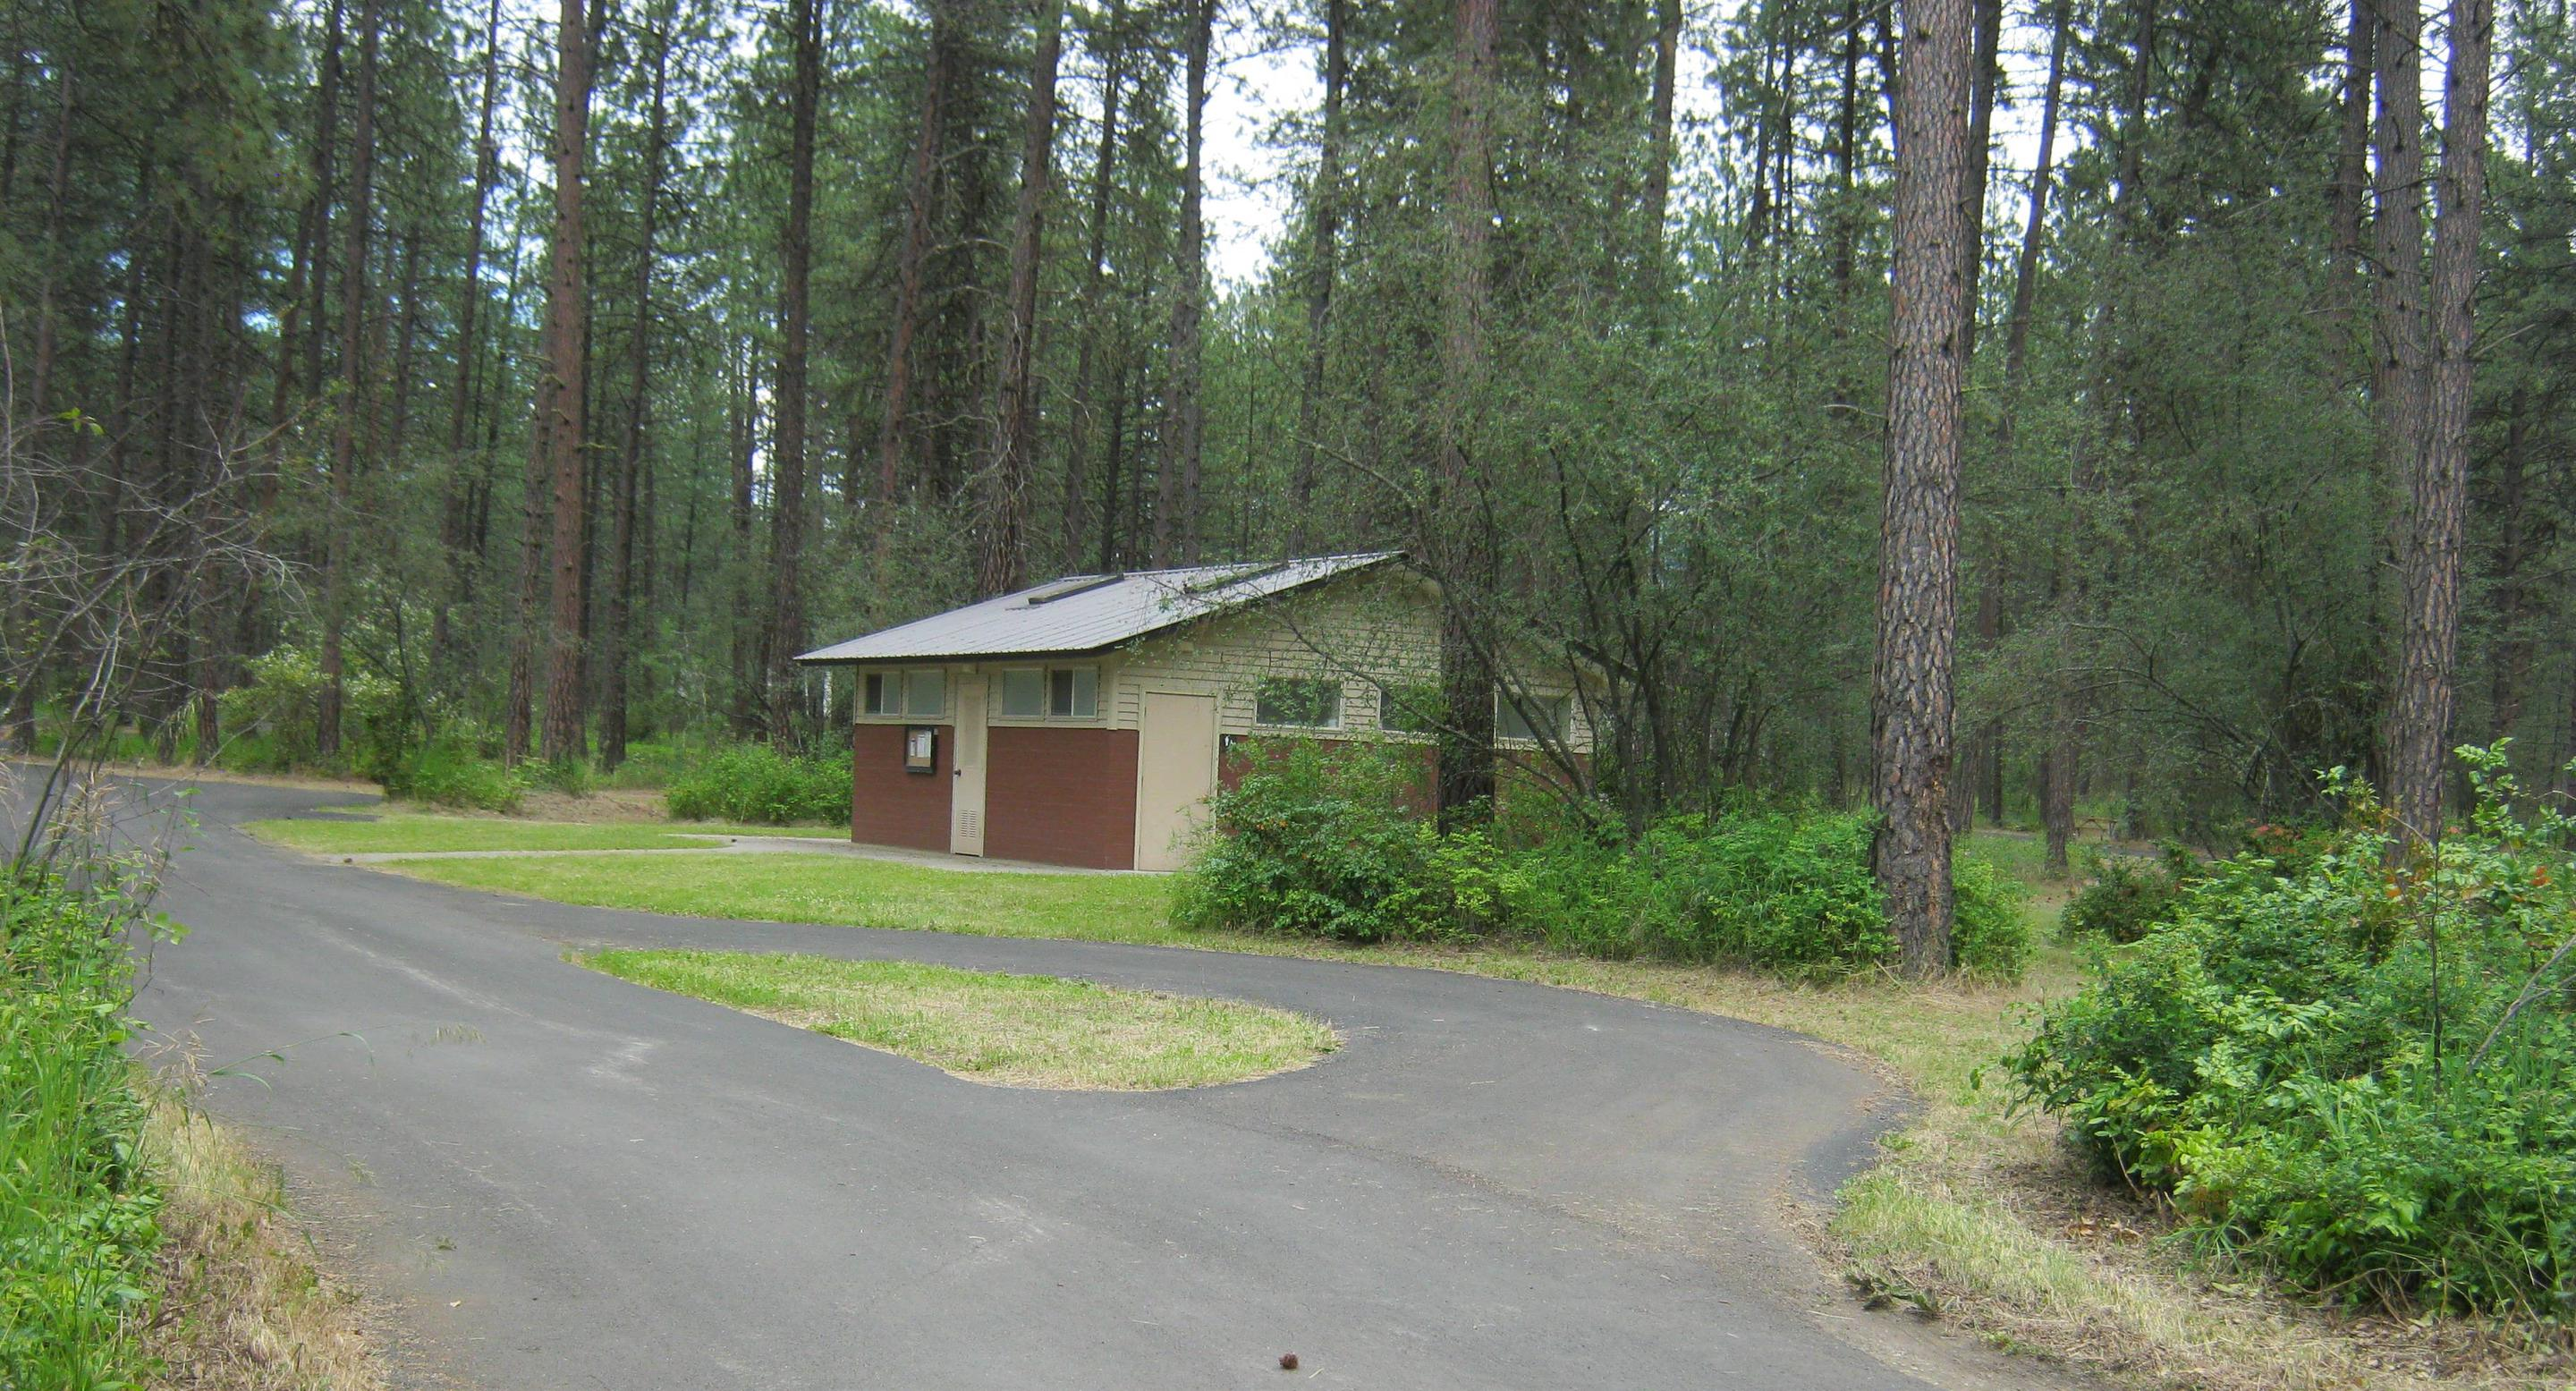 Alt view of 69Site 69, Pull Through, Trees and comfort station in backgorund